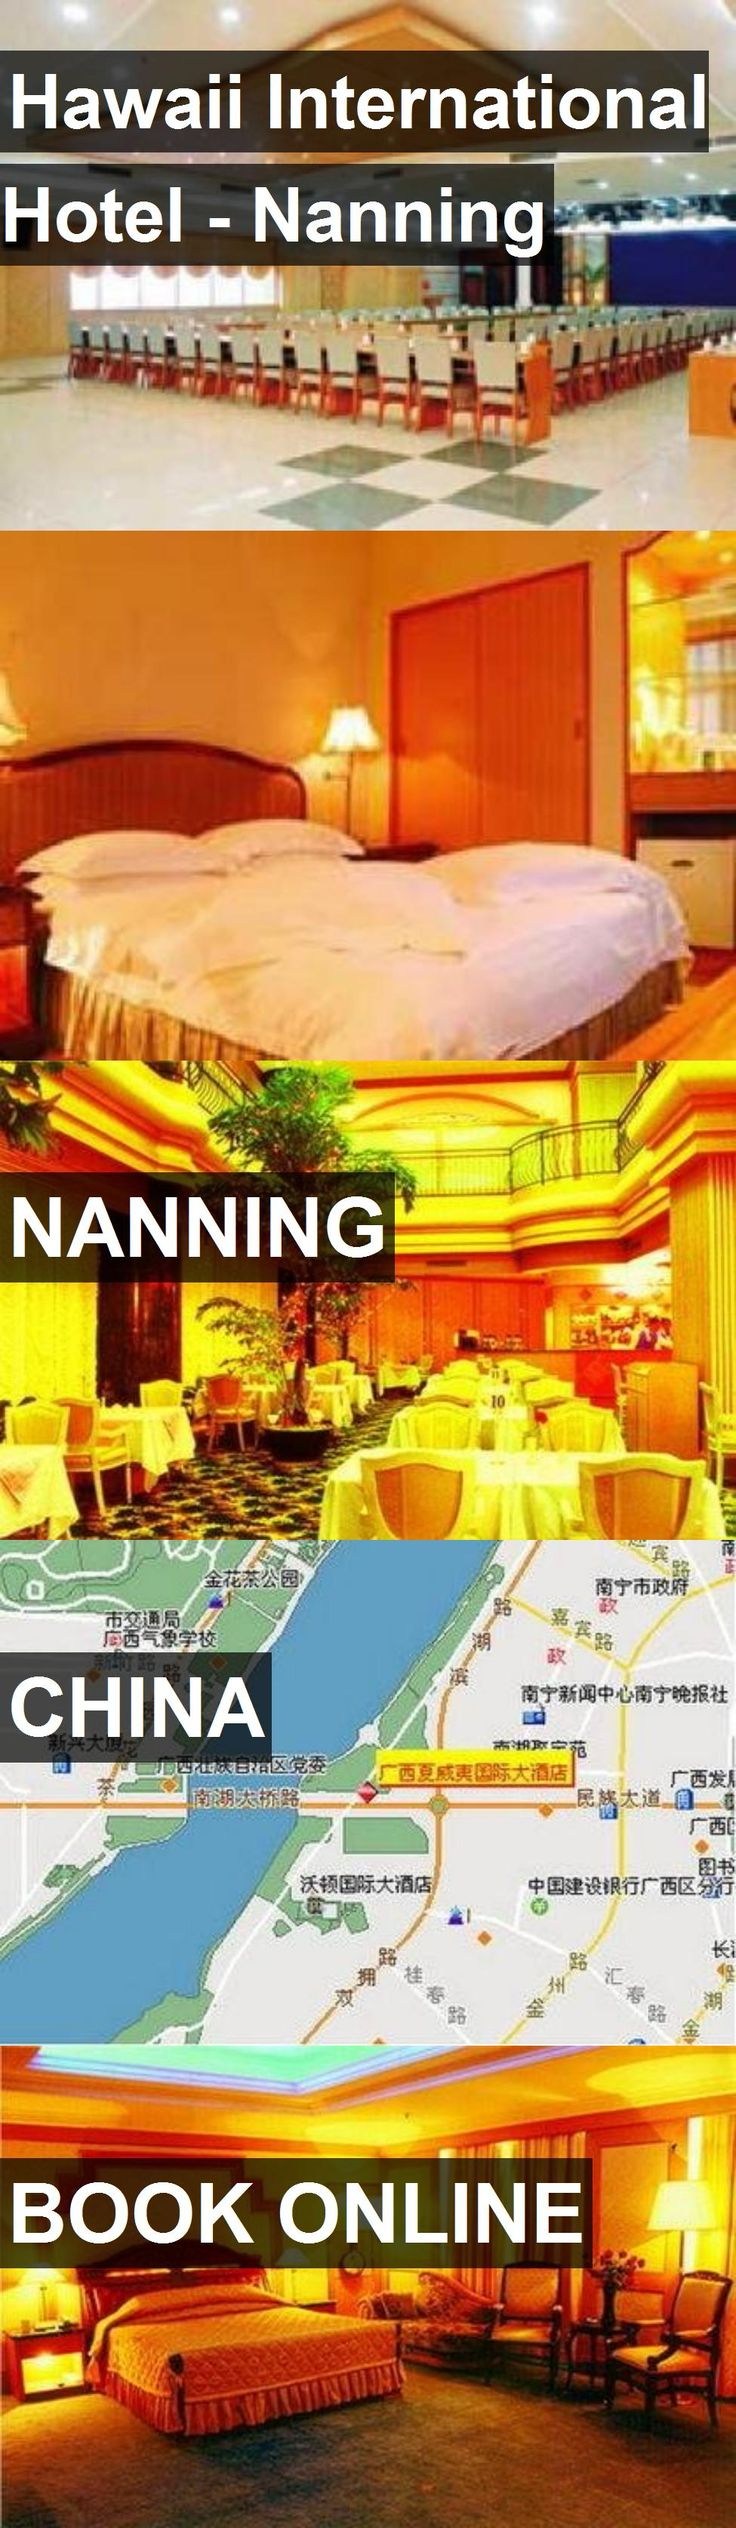 Hotel Hawaii International Hotel - Nanning in Nanning, China. For more information, photos, reviews and best prices please follow the link. #China #Nanning #HawaiiInternationalHotel-Nanning #hotel #travel #vacation